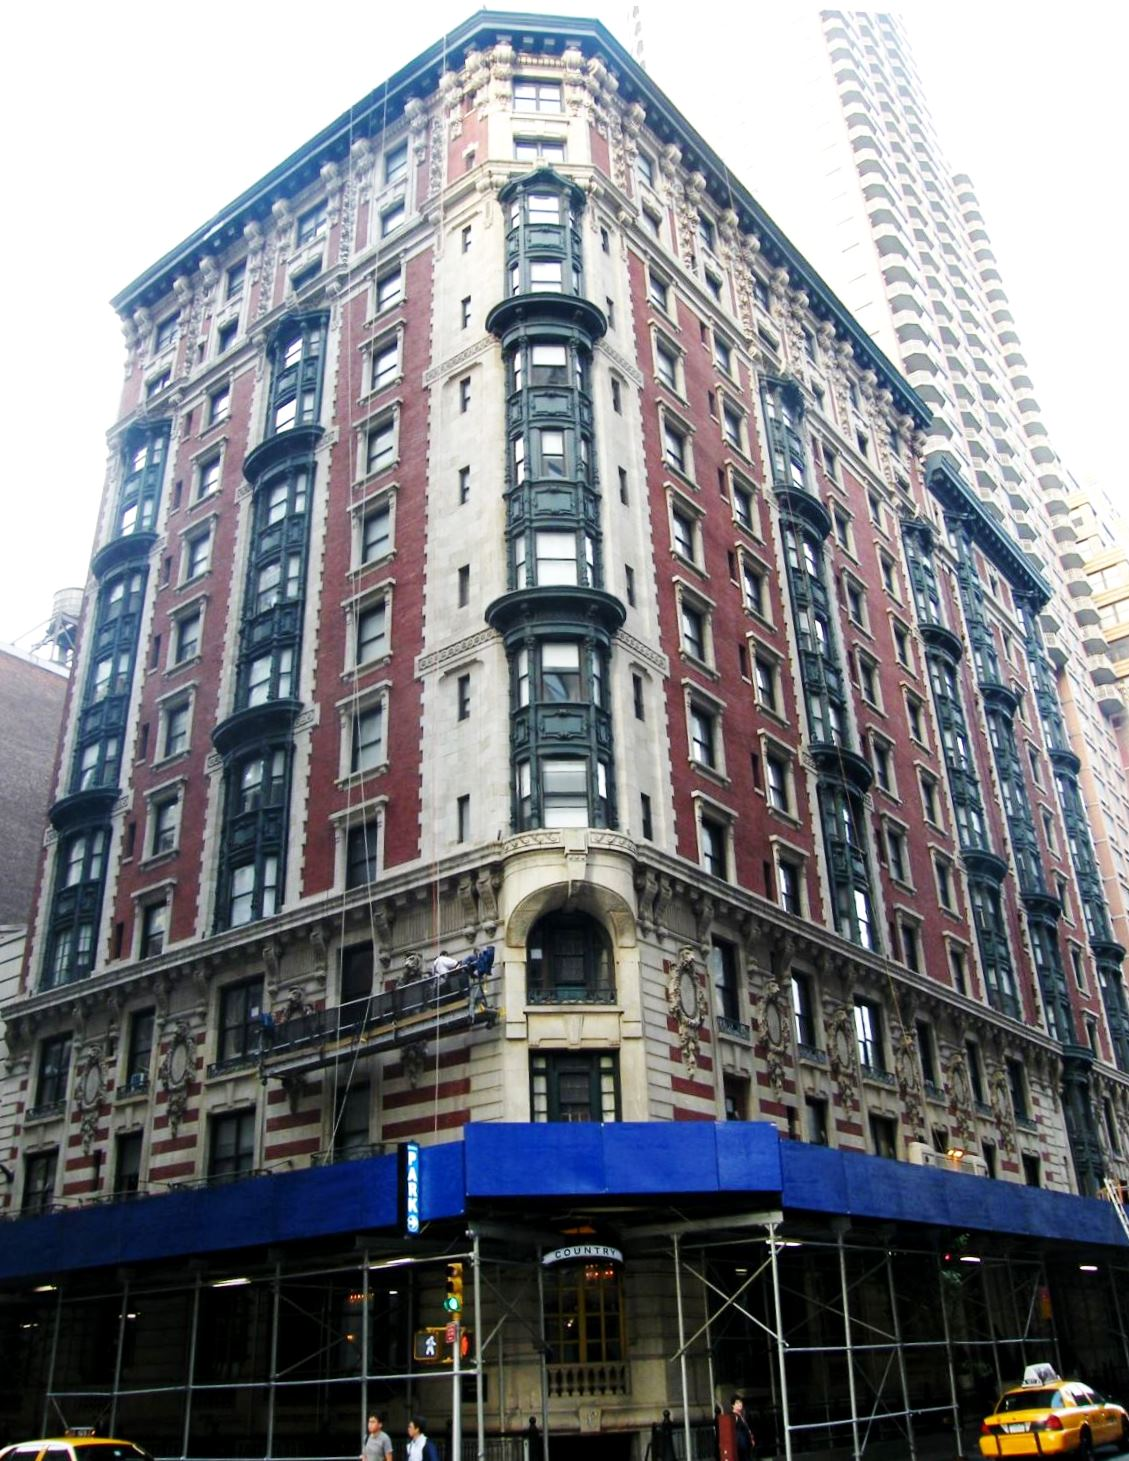 Seville Hotel (New York City)